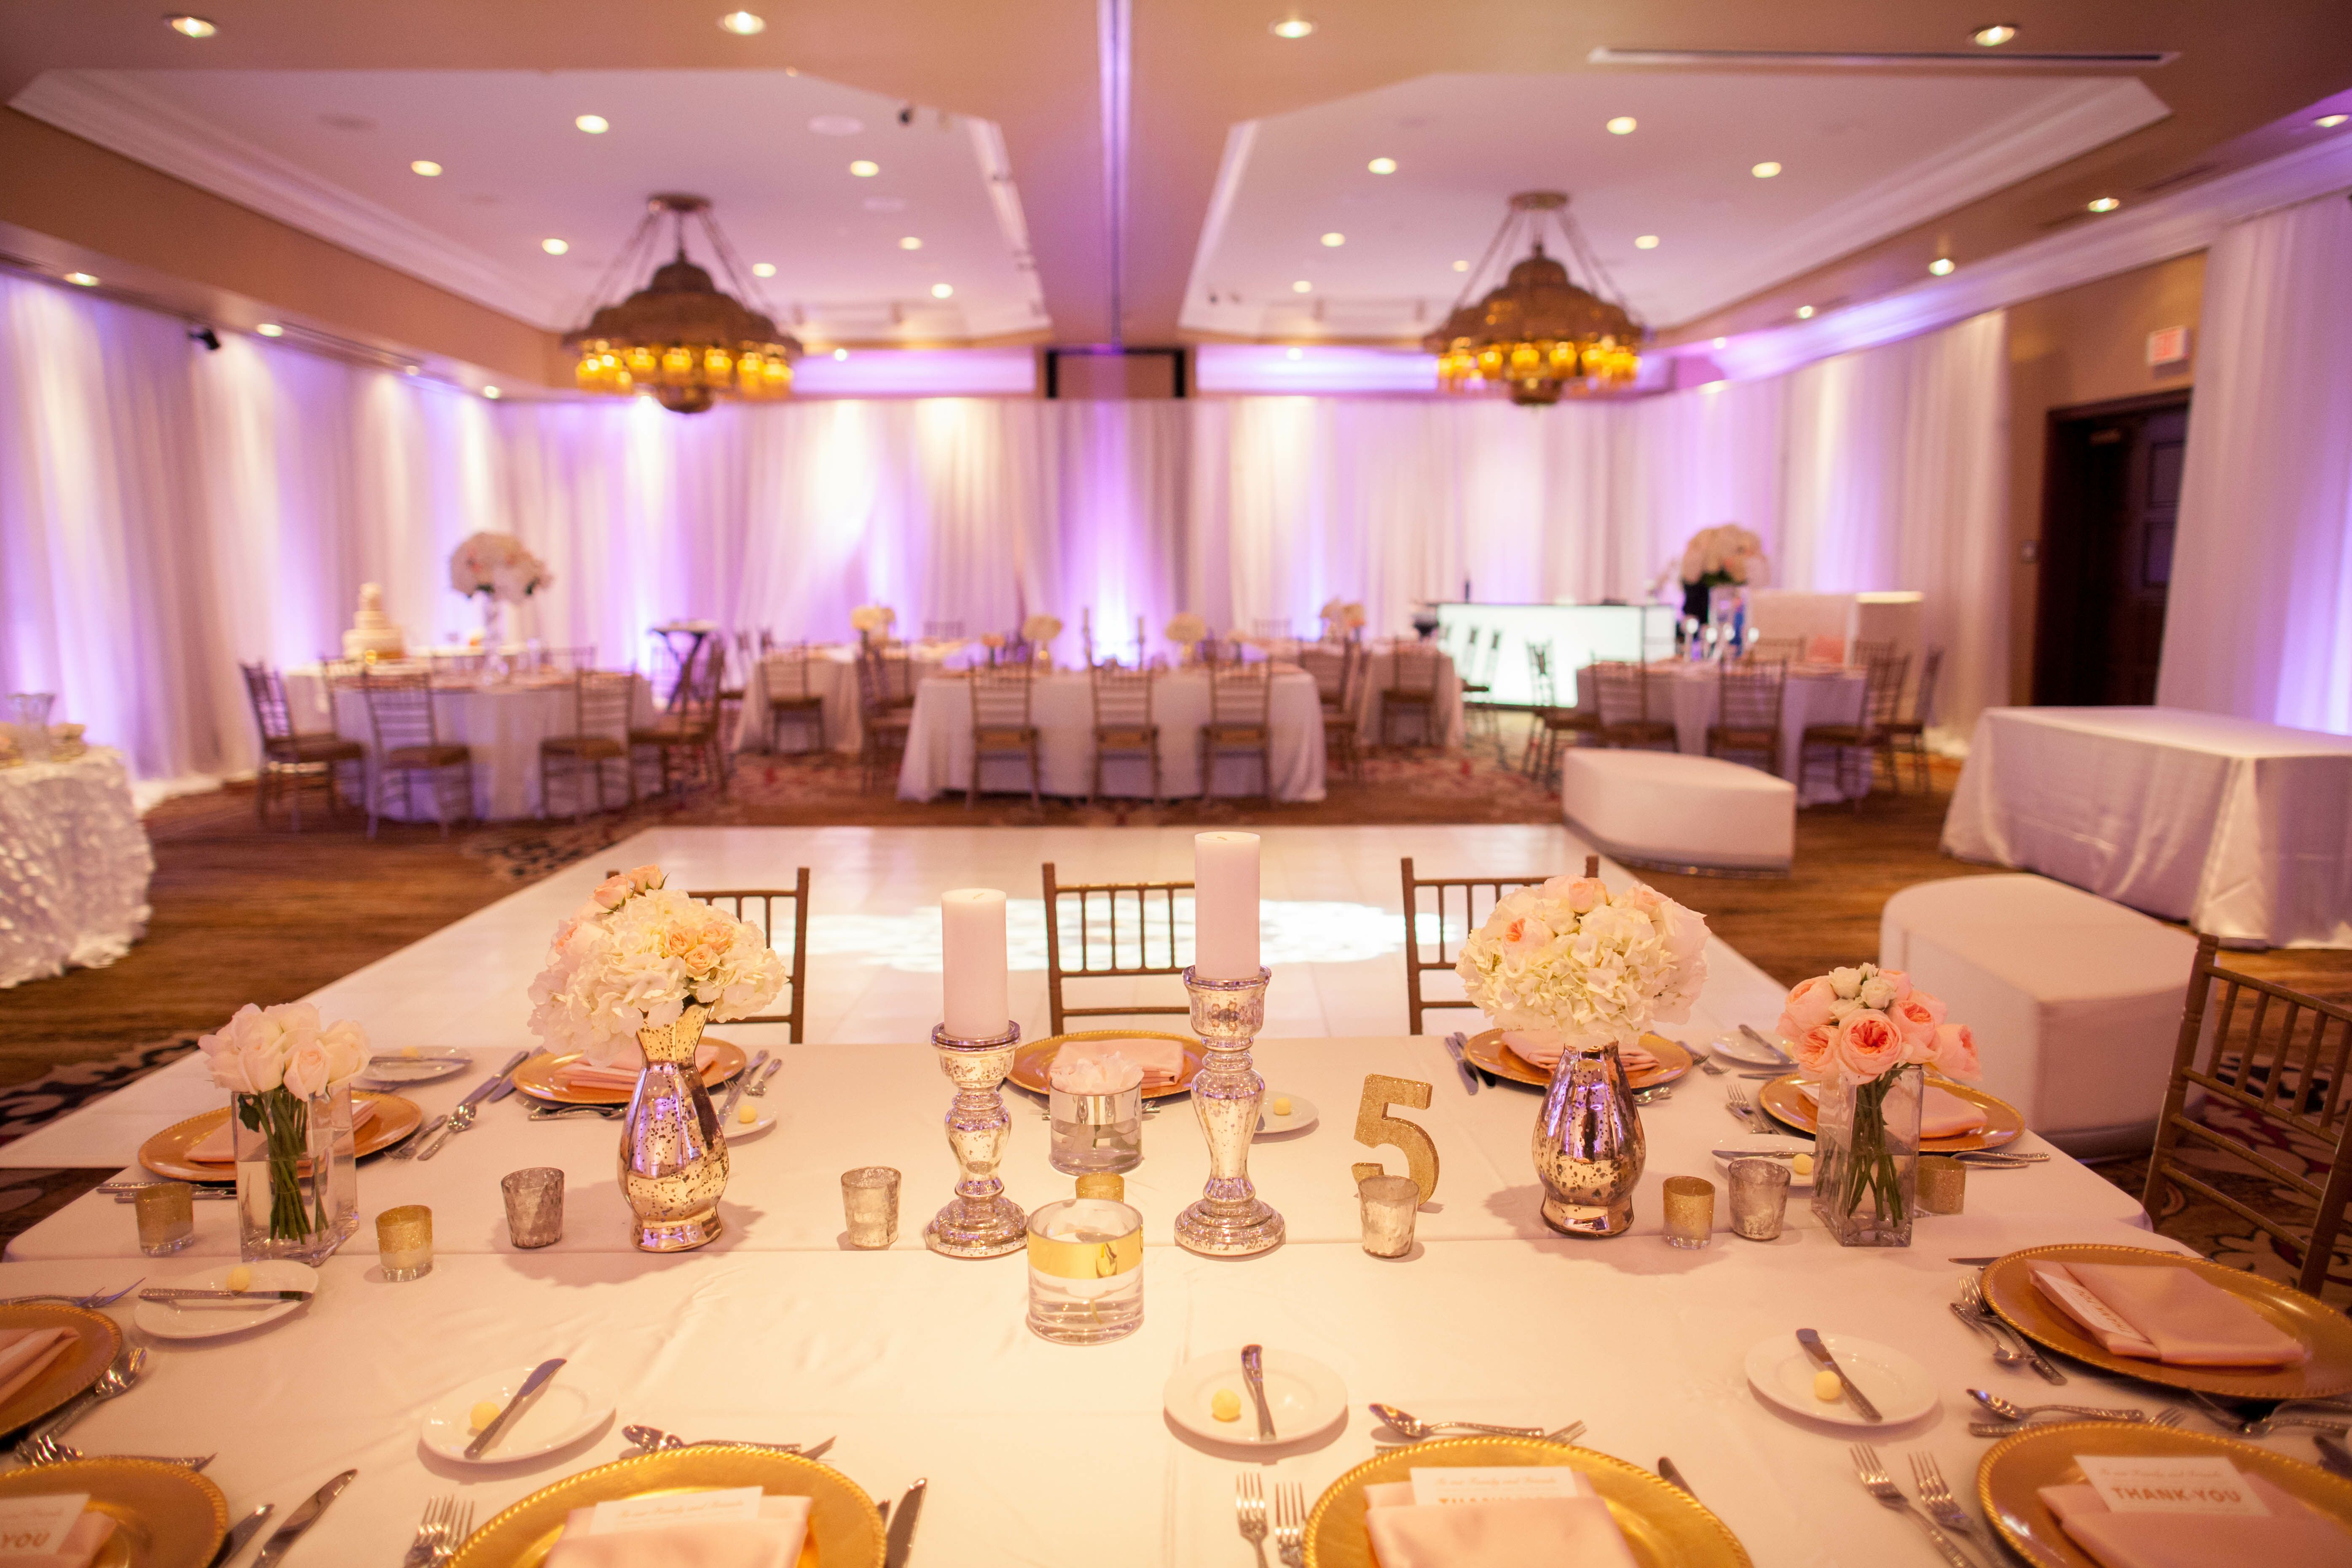 Wedding rentals in jacksonville fl the knot mugwump productions junglespirit Images